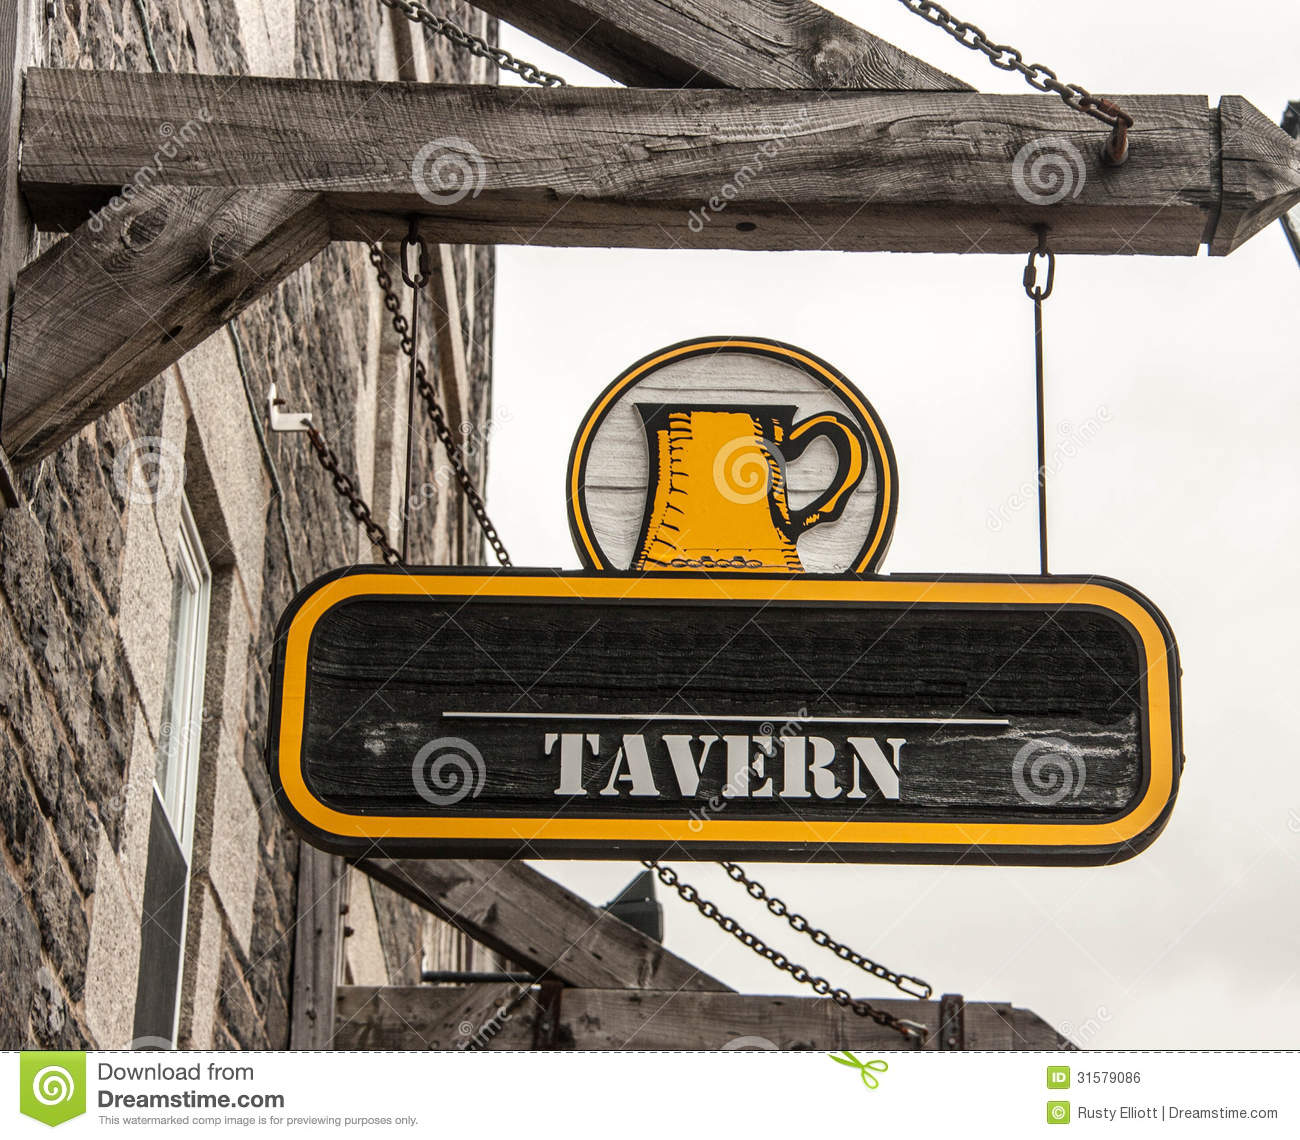 Tavern Sign Stock Illustration Image Of Design, Antique. Hyperemic Signs. Burmese Signs. Outside Signs. School Subject Signs. Handmade Signs Of Stroke. Anxiety Symptoms Signs. Means Depression Signs. Acceptance Signs Of Stroke